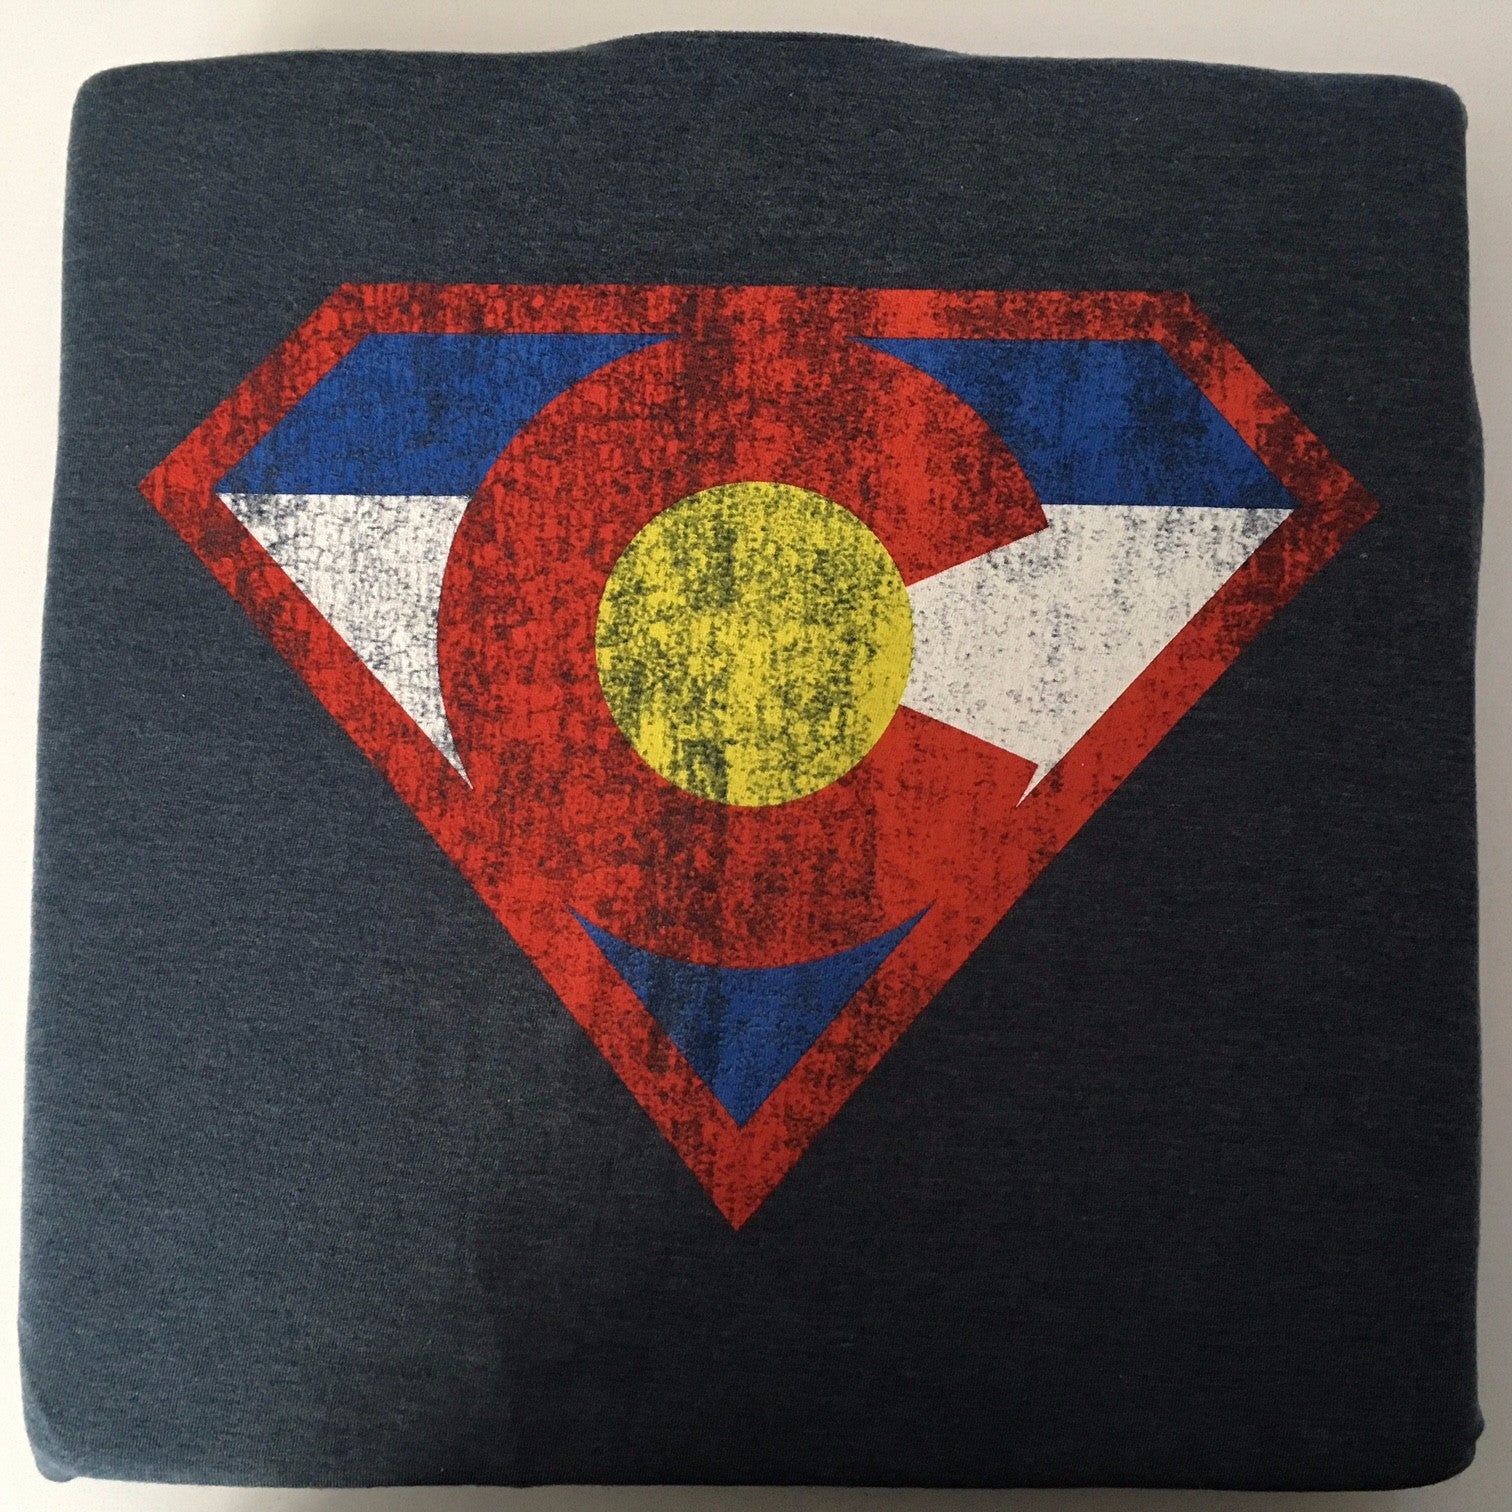 Super C T-Shirt - Tractor Beam Apparel